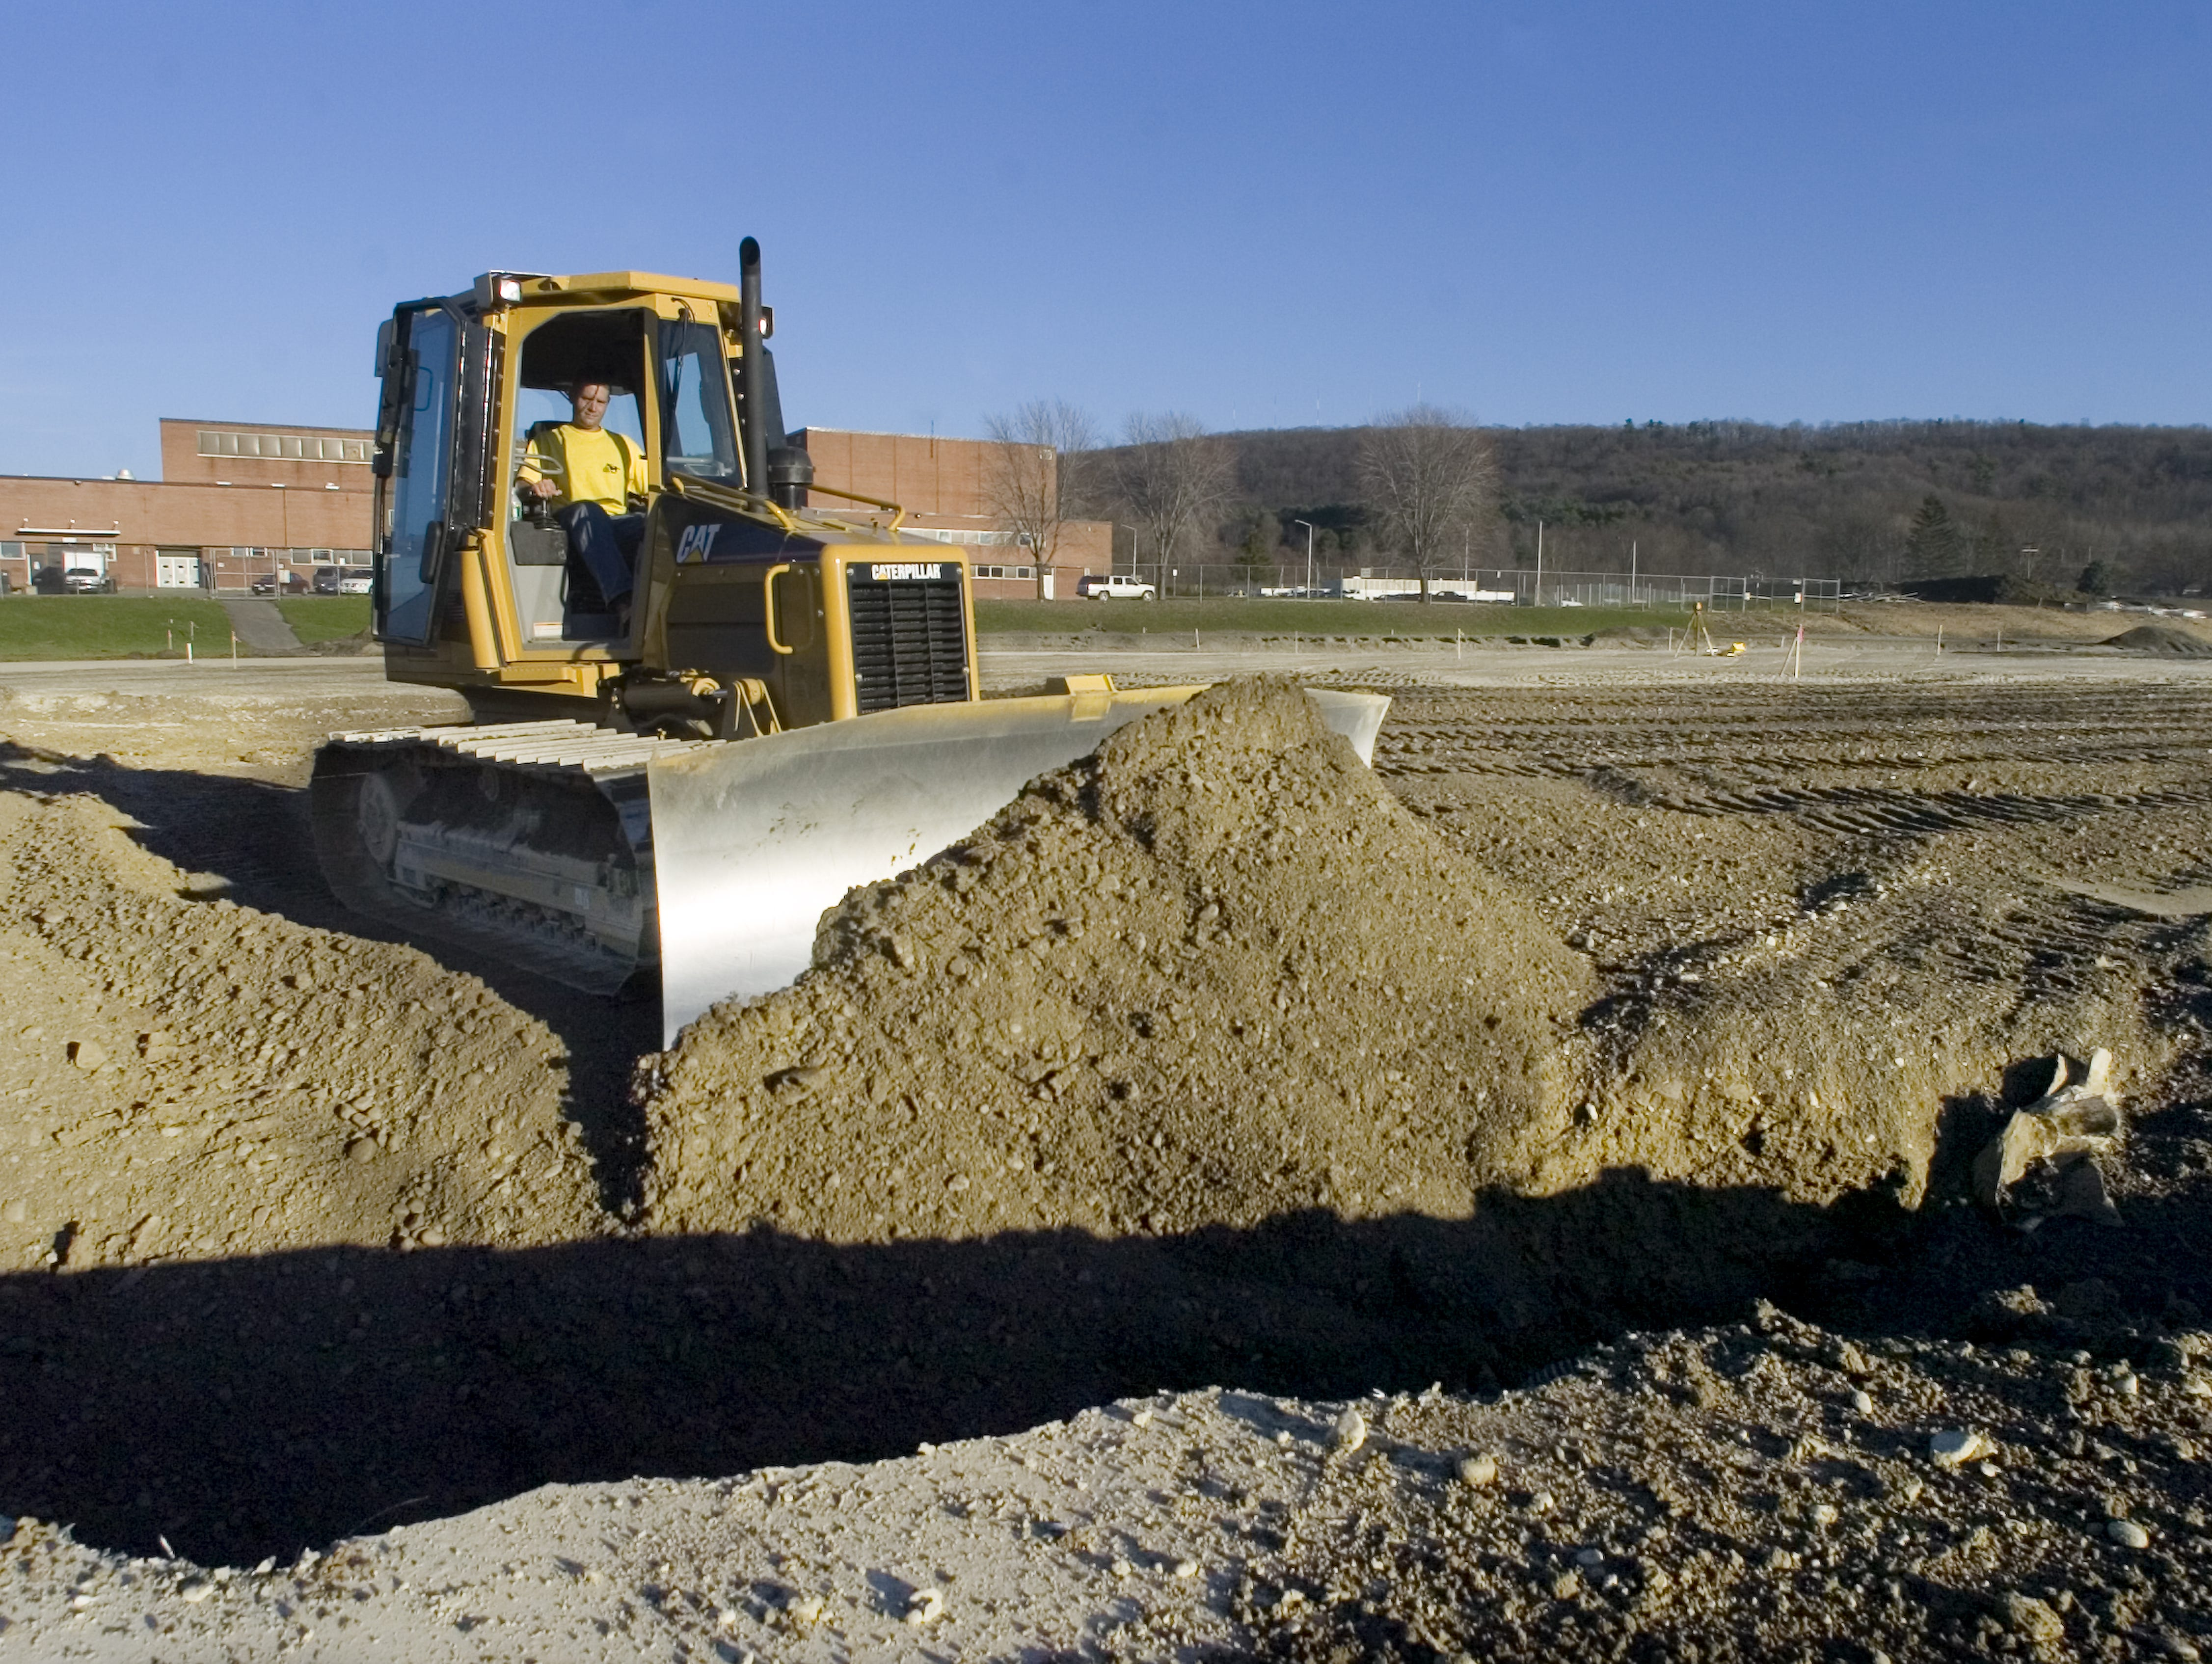 In 2006, Jamin Boland with Boland's Excavating & Topsoil, fills a hole with a bulldozer after old drainage pipe was removed from the old football field in Vestal.